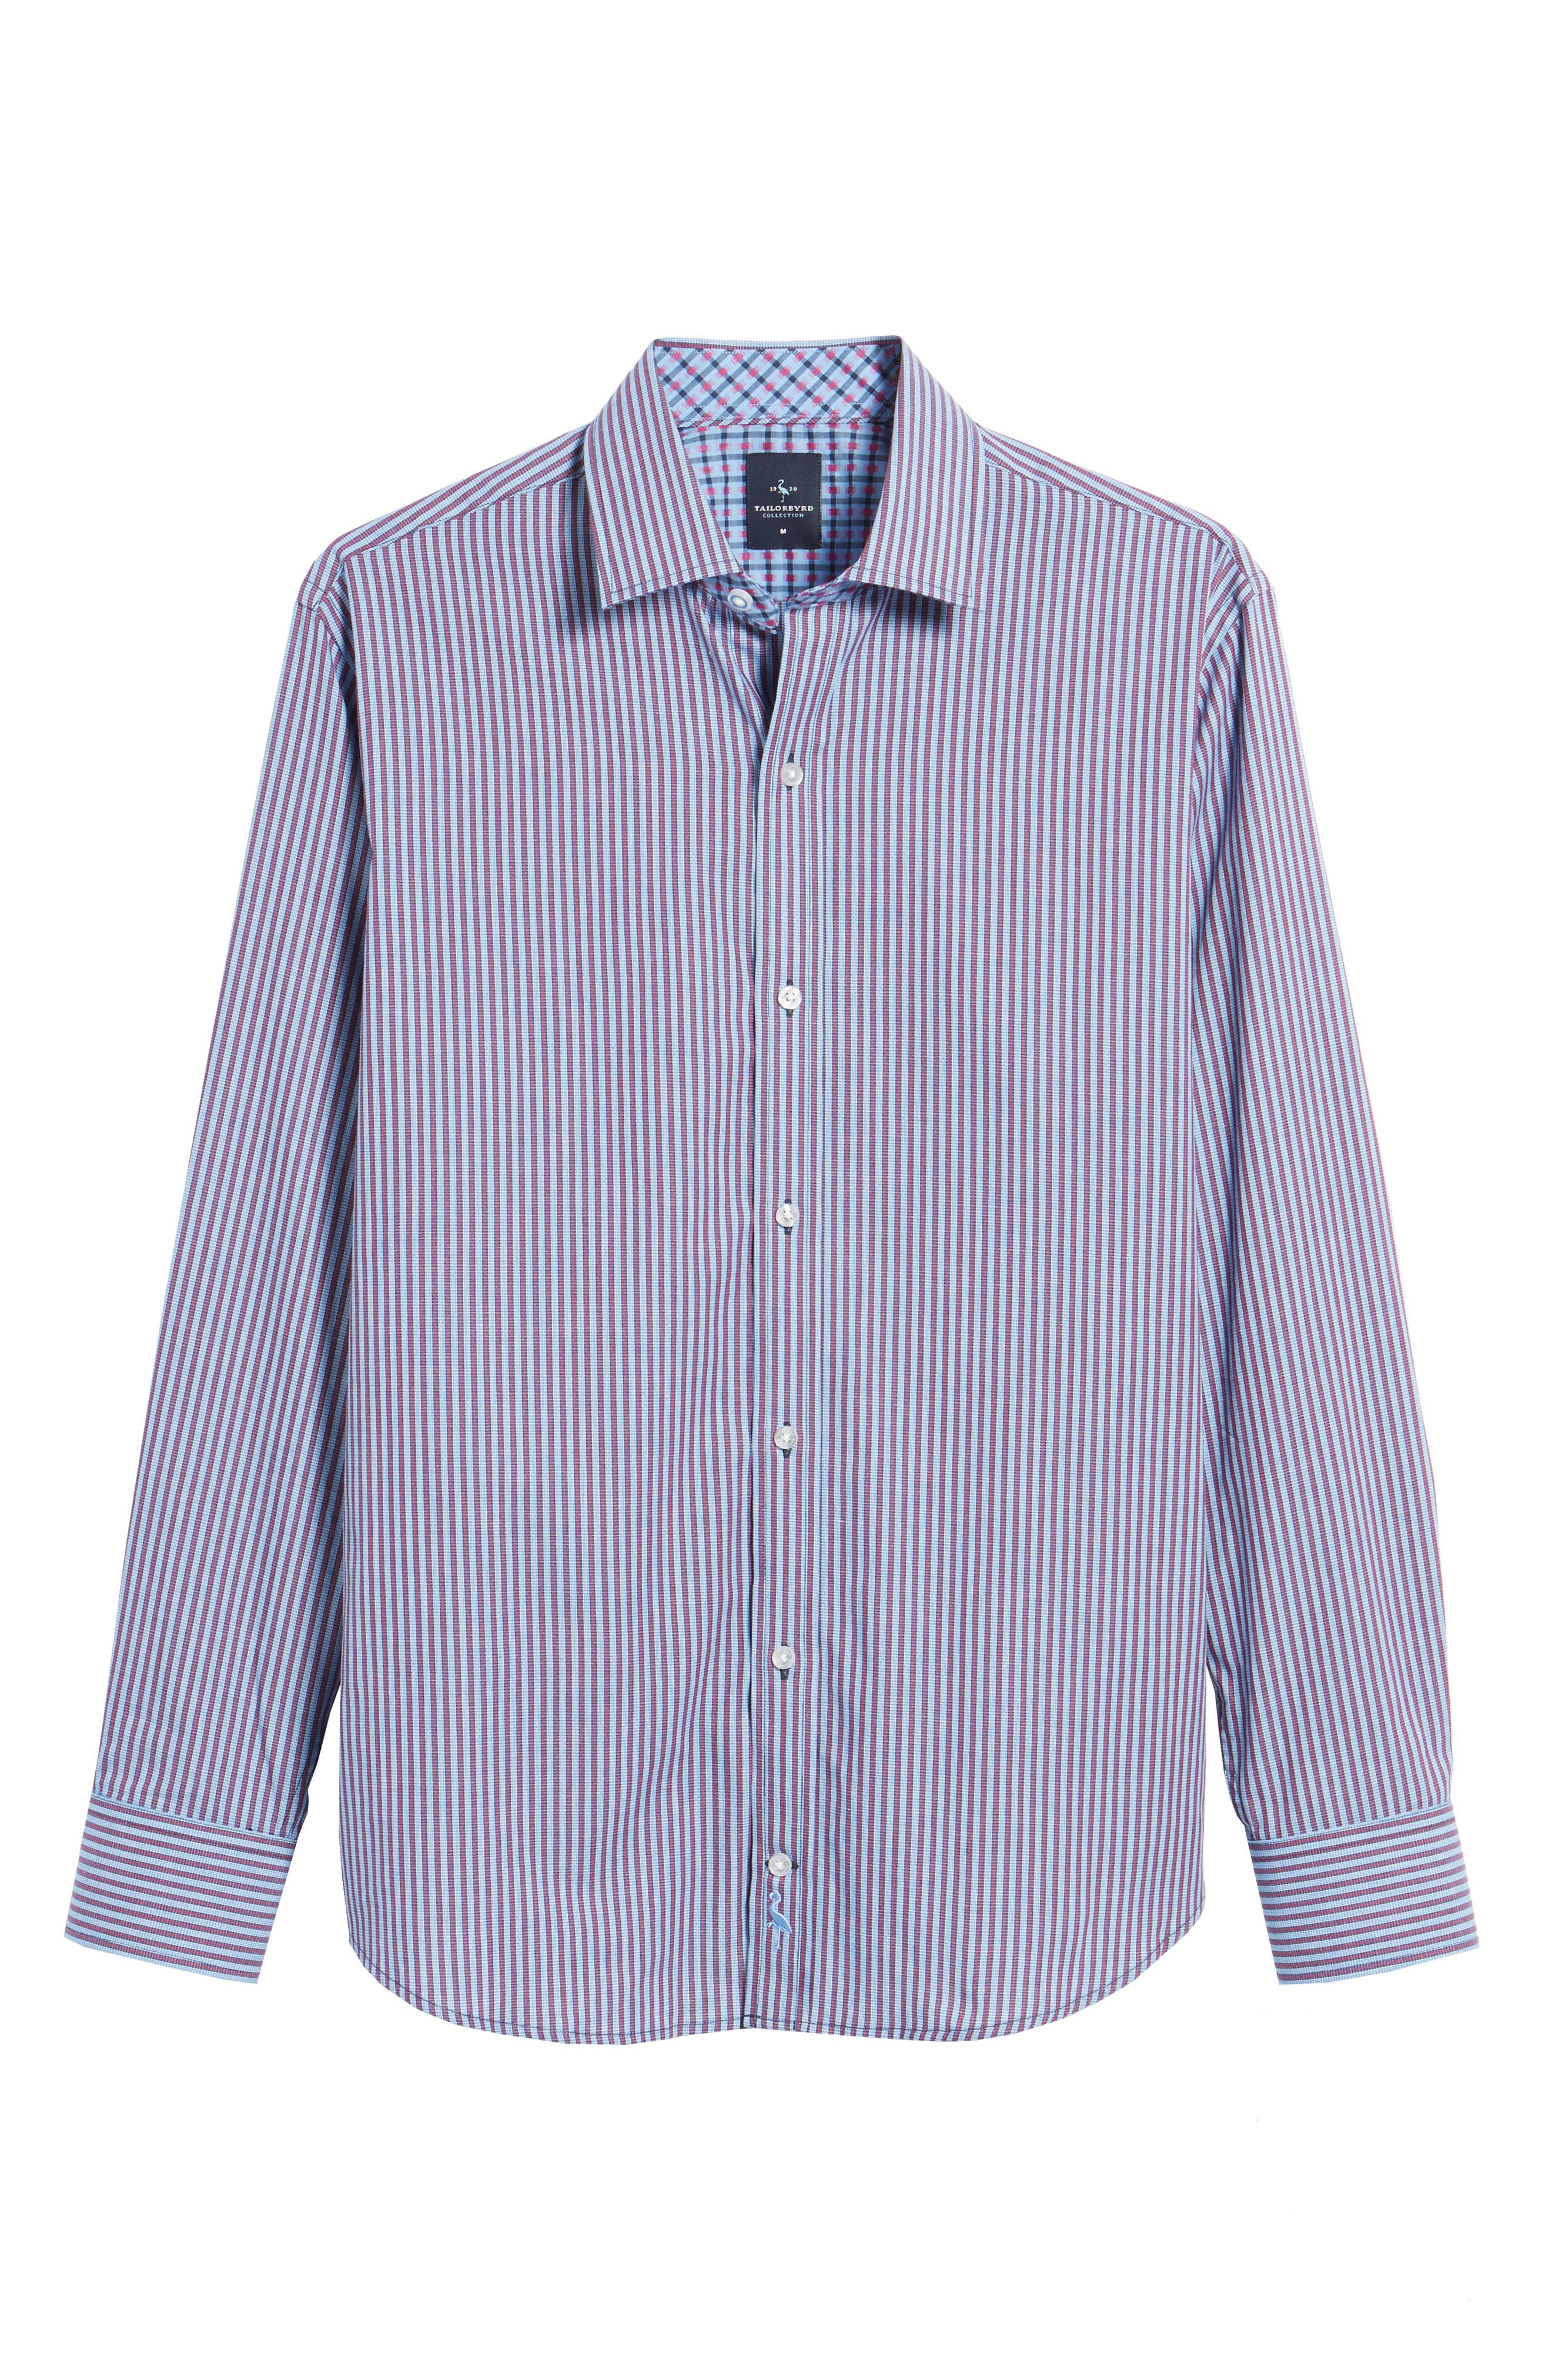 Brownfields Striped Sport Shirt,                             Alternate thumbnail 6, color,                             Merlot